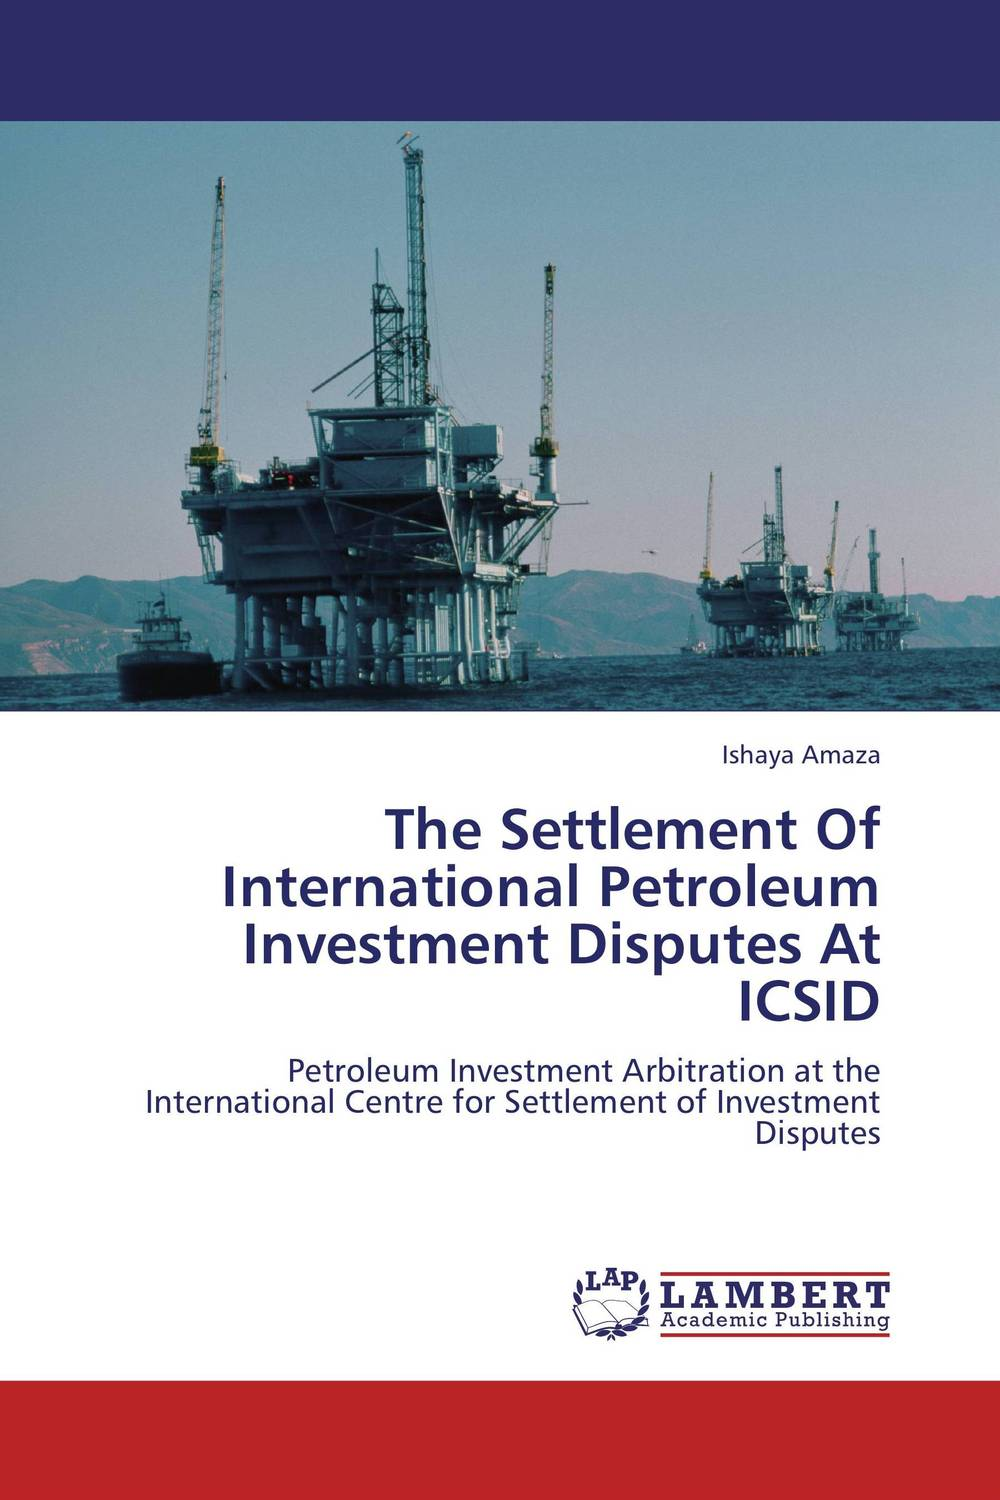 The Settlement Of International Petroleum Investment Disputes At ICSID international commercial disputes